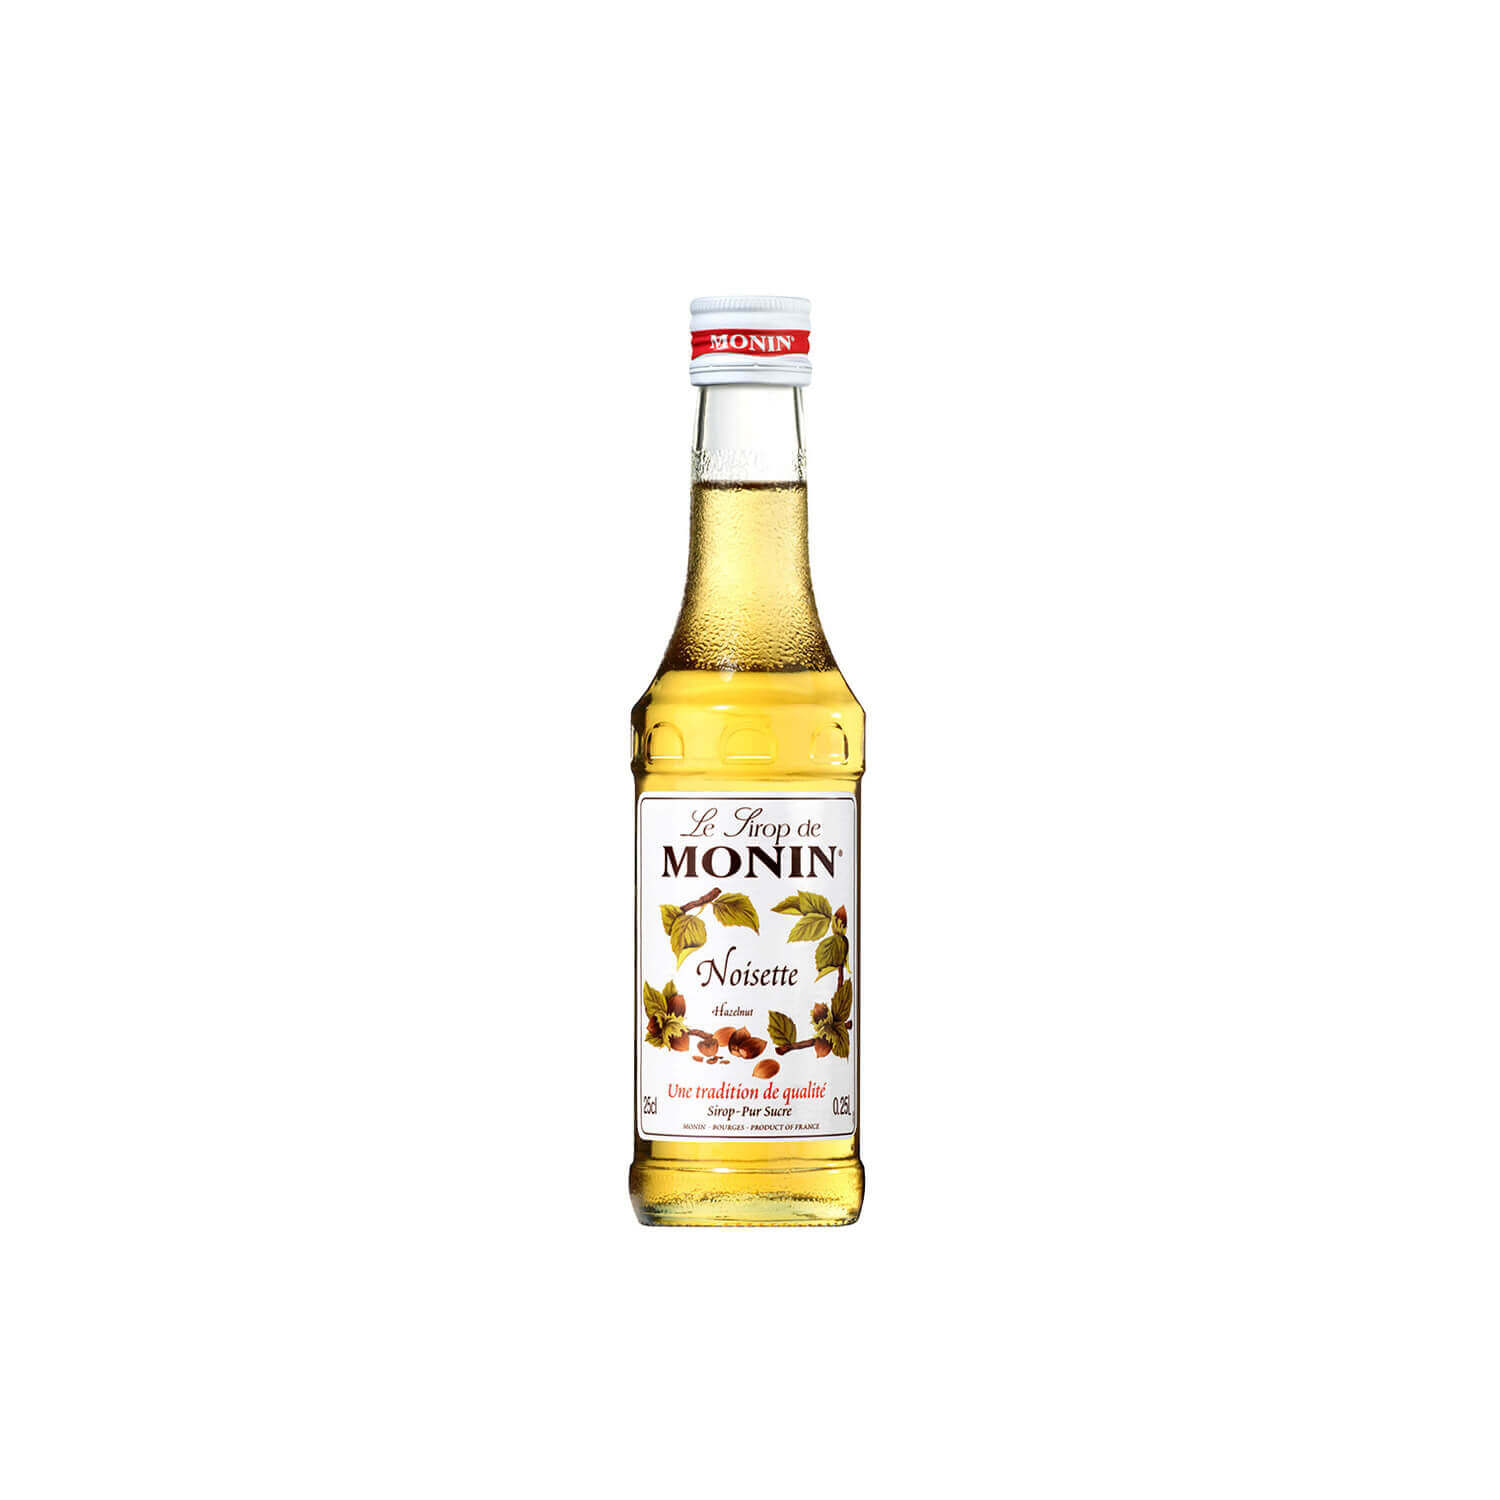 Monin - Siroop - Hazelnoot - 25 cl